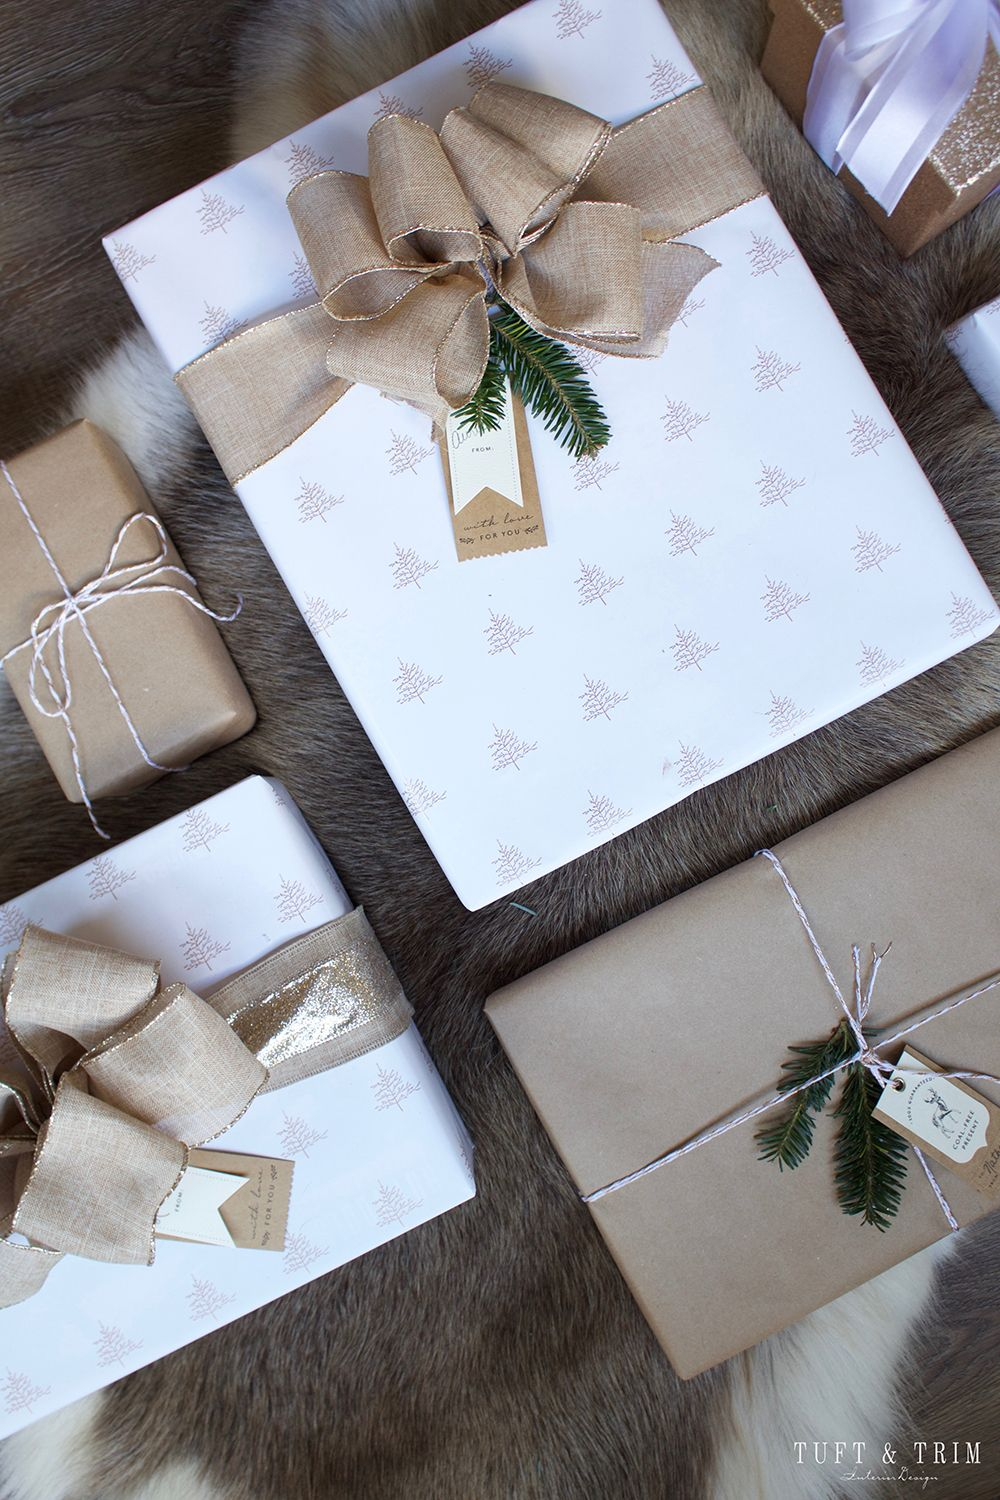 Champagne & Linen Christmas Gift Wrap - Tuft & Tri